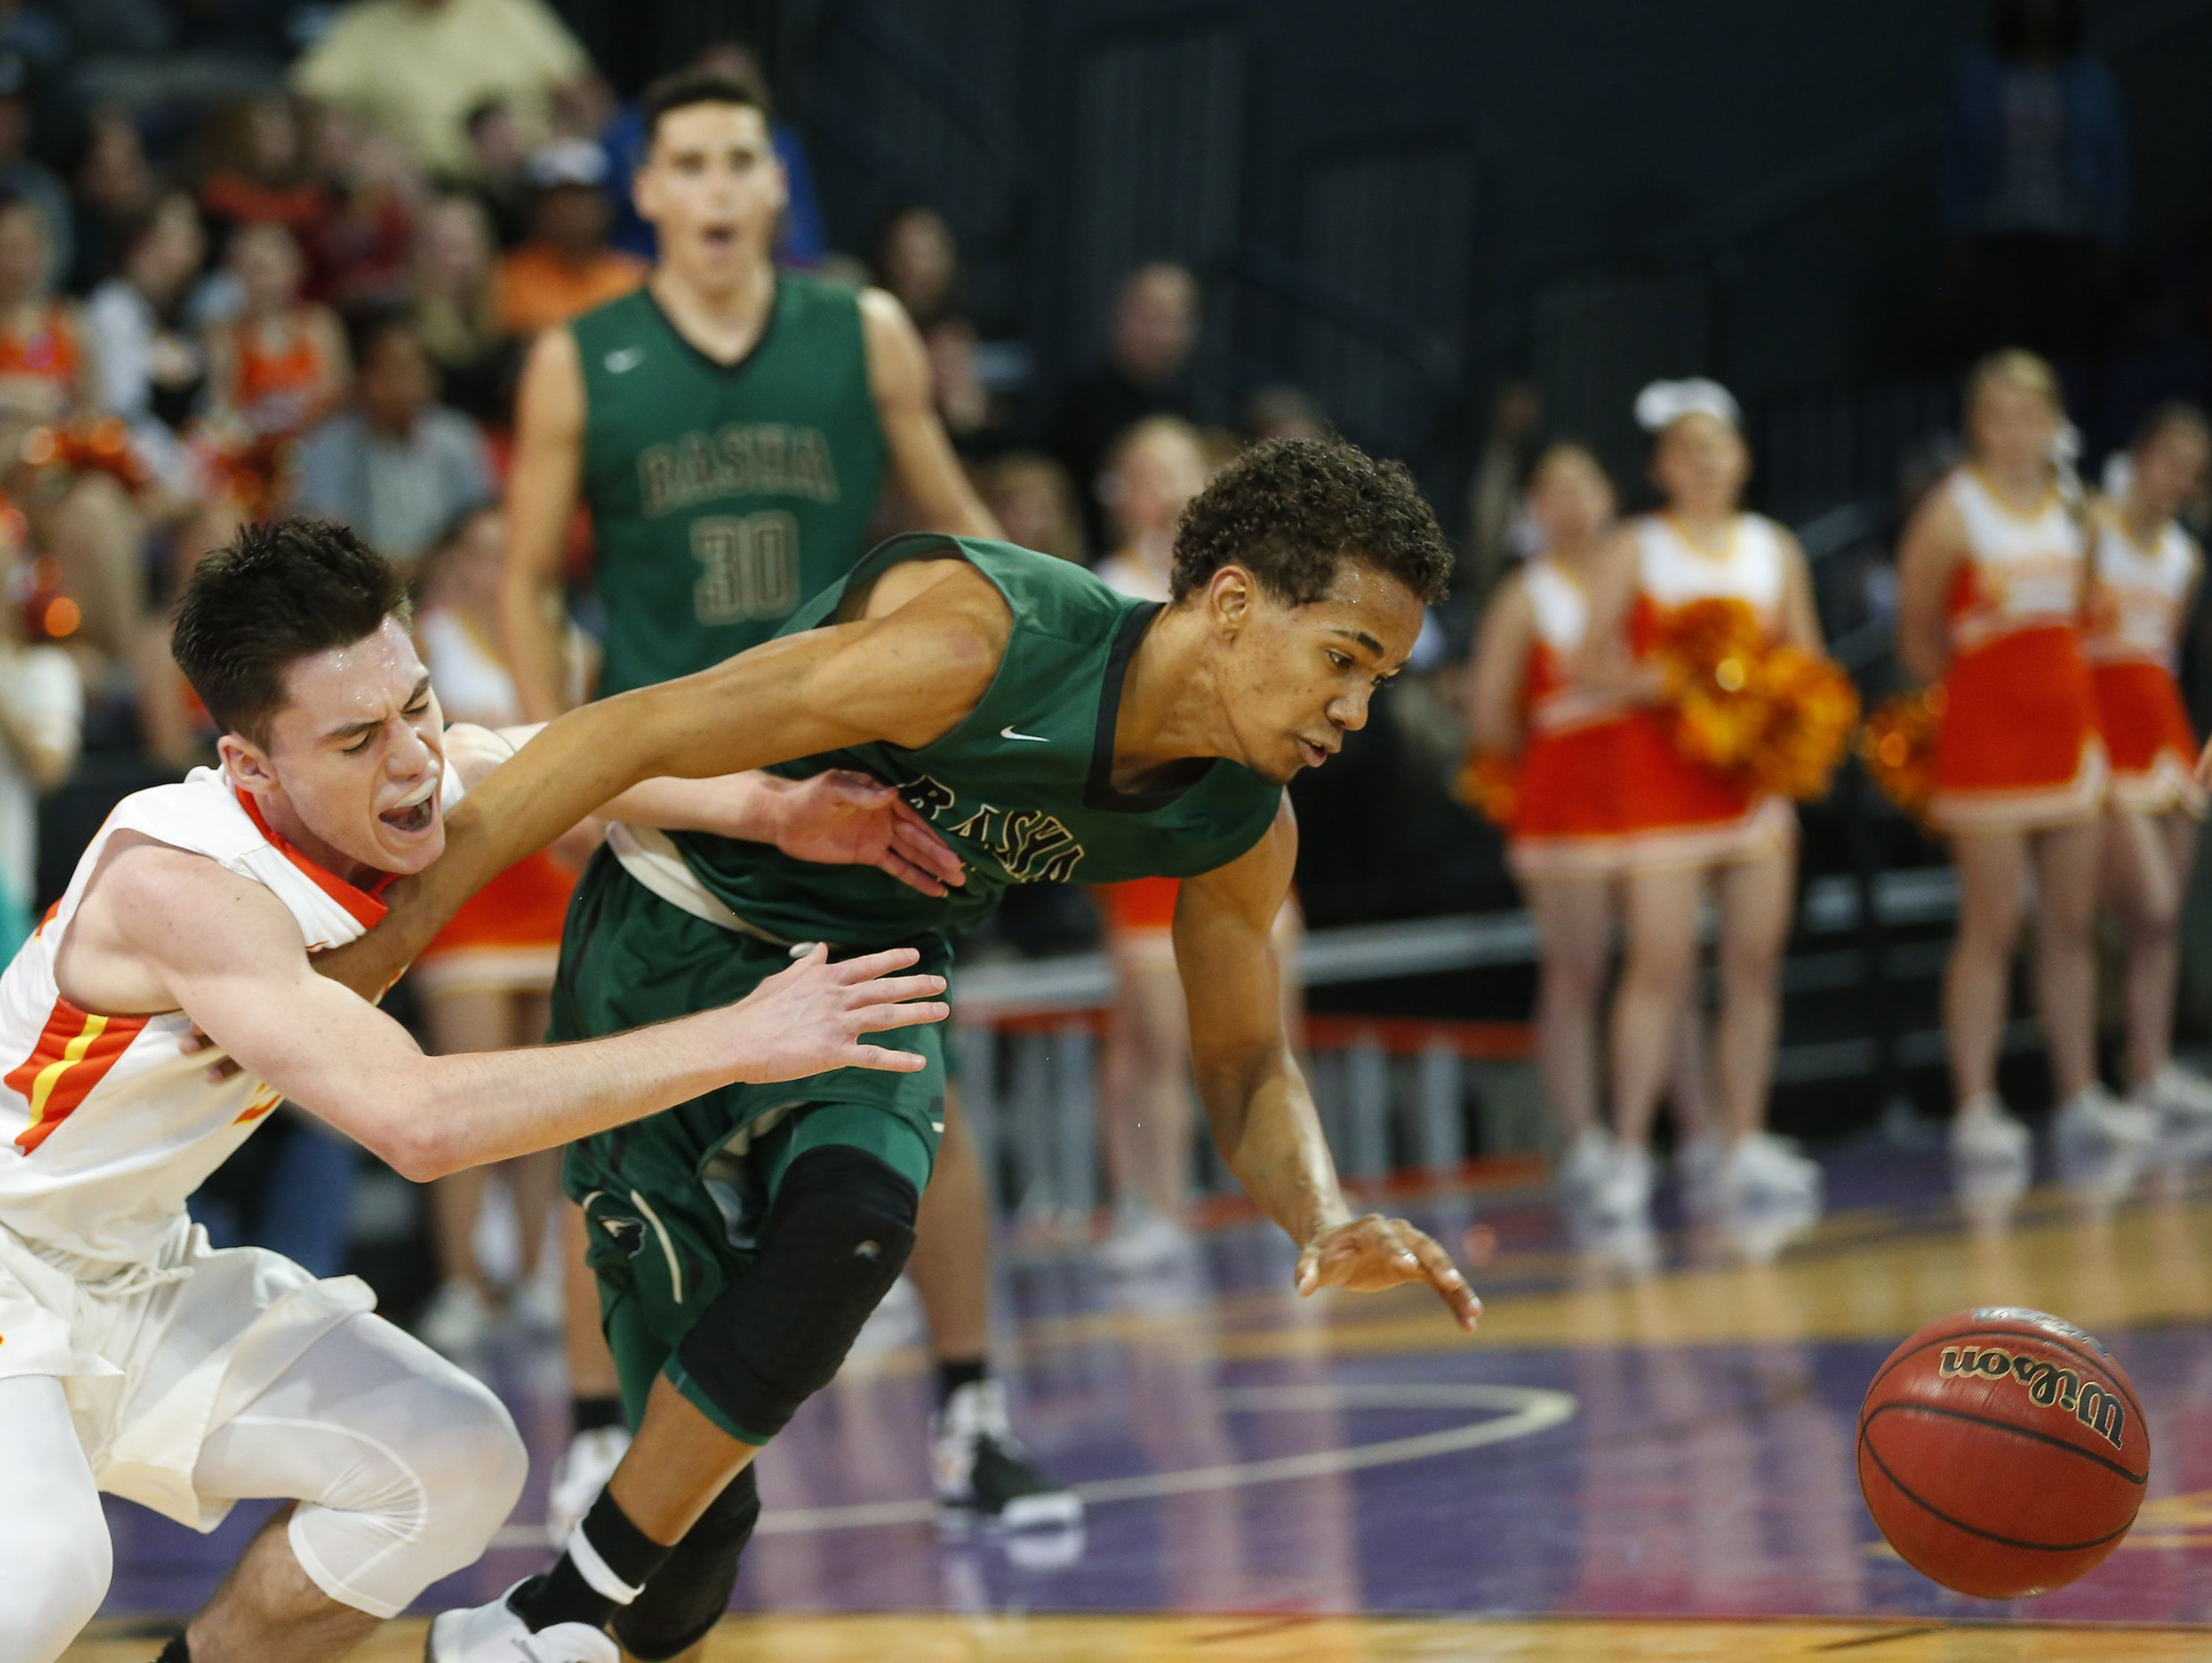 Corona del Sol guard Alex Barcello (23) is fouled by Basha guard Terrell Brown (2) during the finals of the 6A Conference state championship at GCU Arena in Phoenix, Ariz. February 28, 2017.